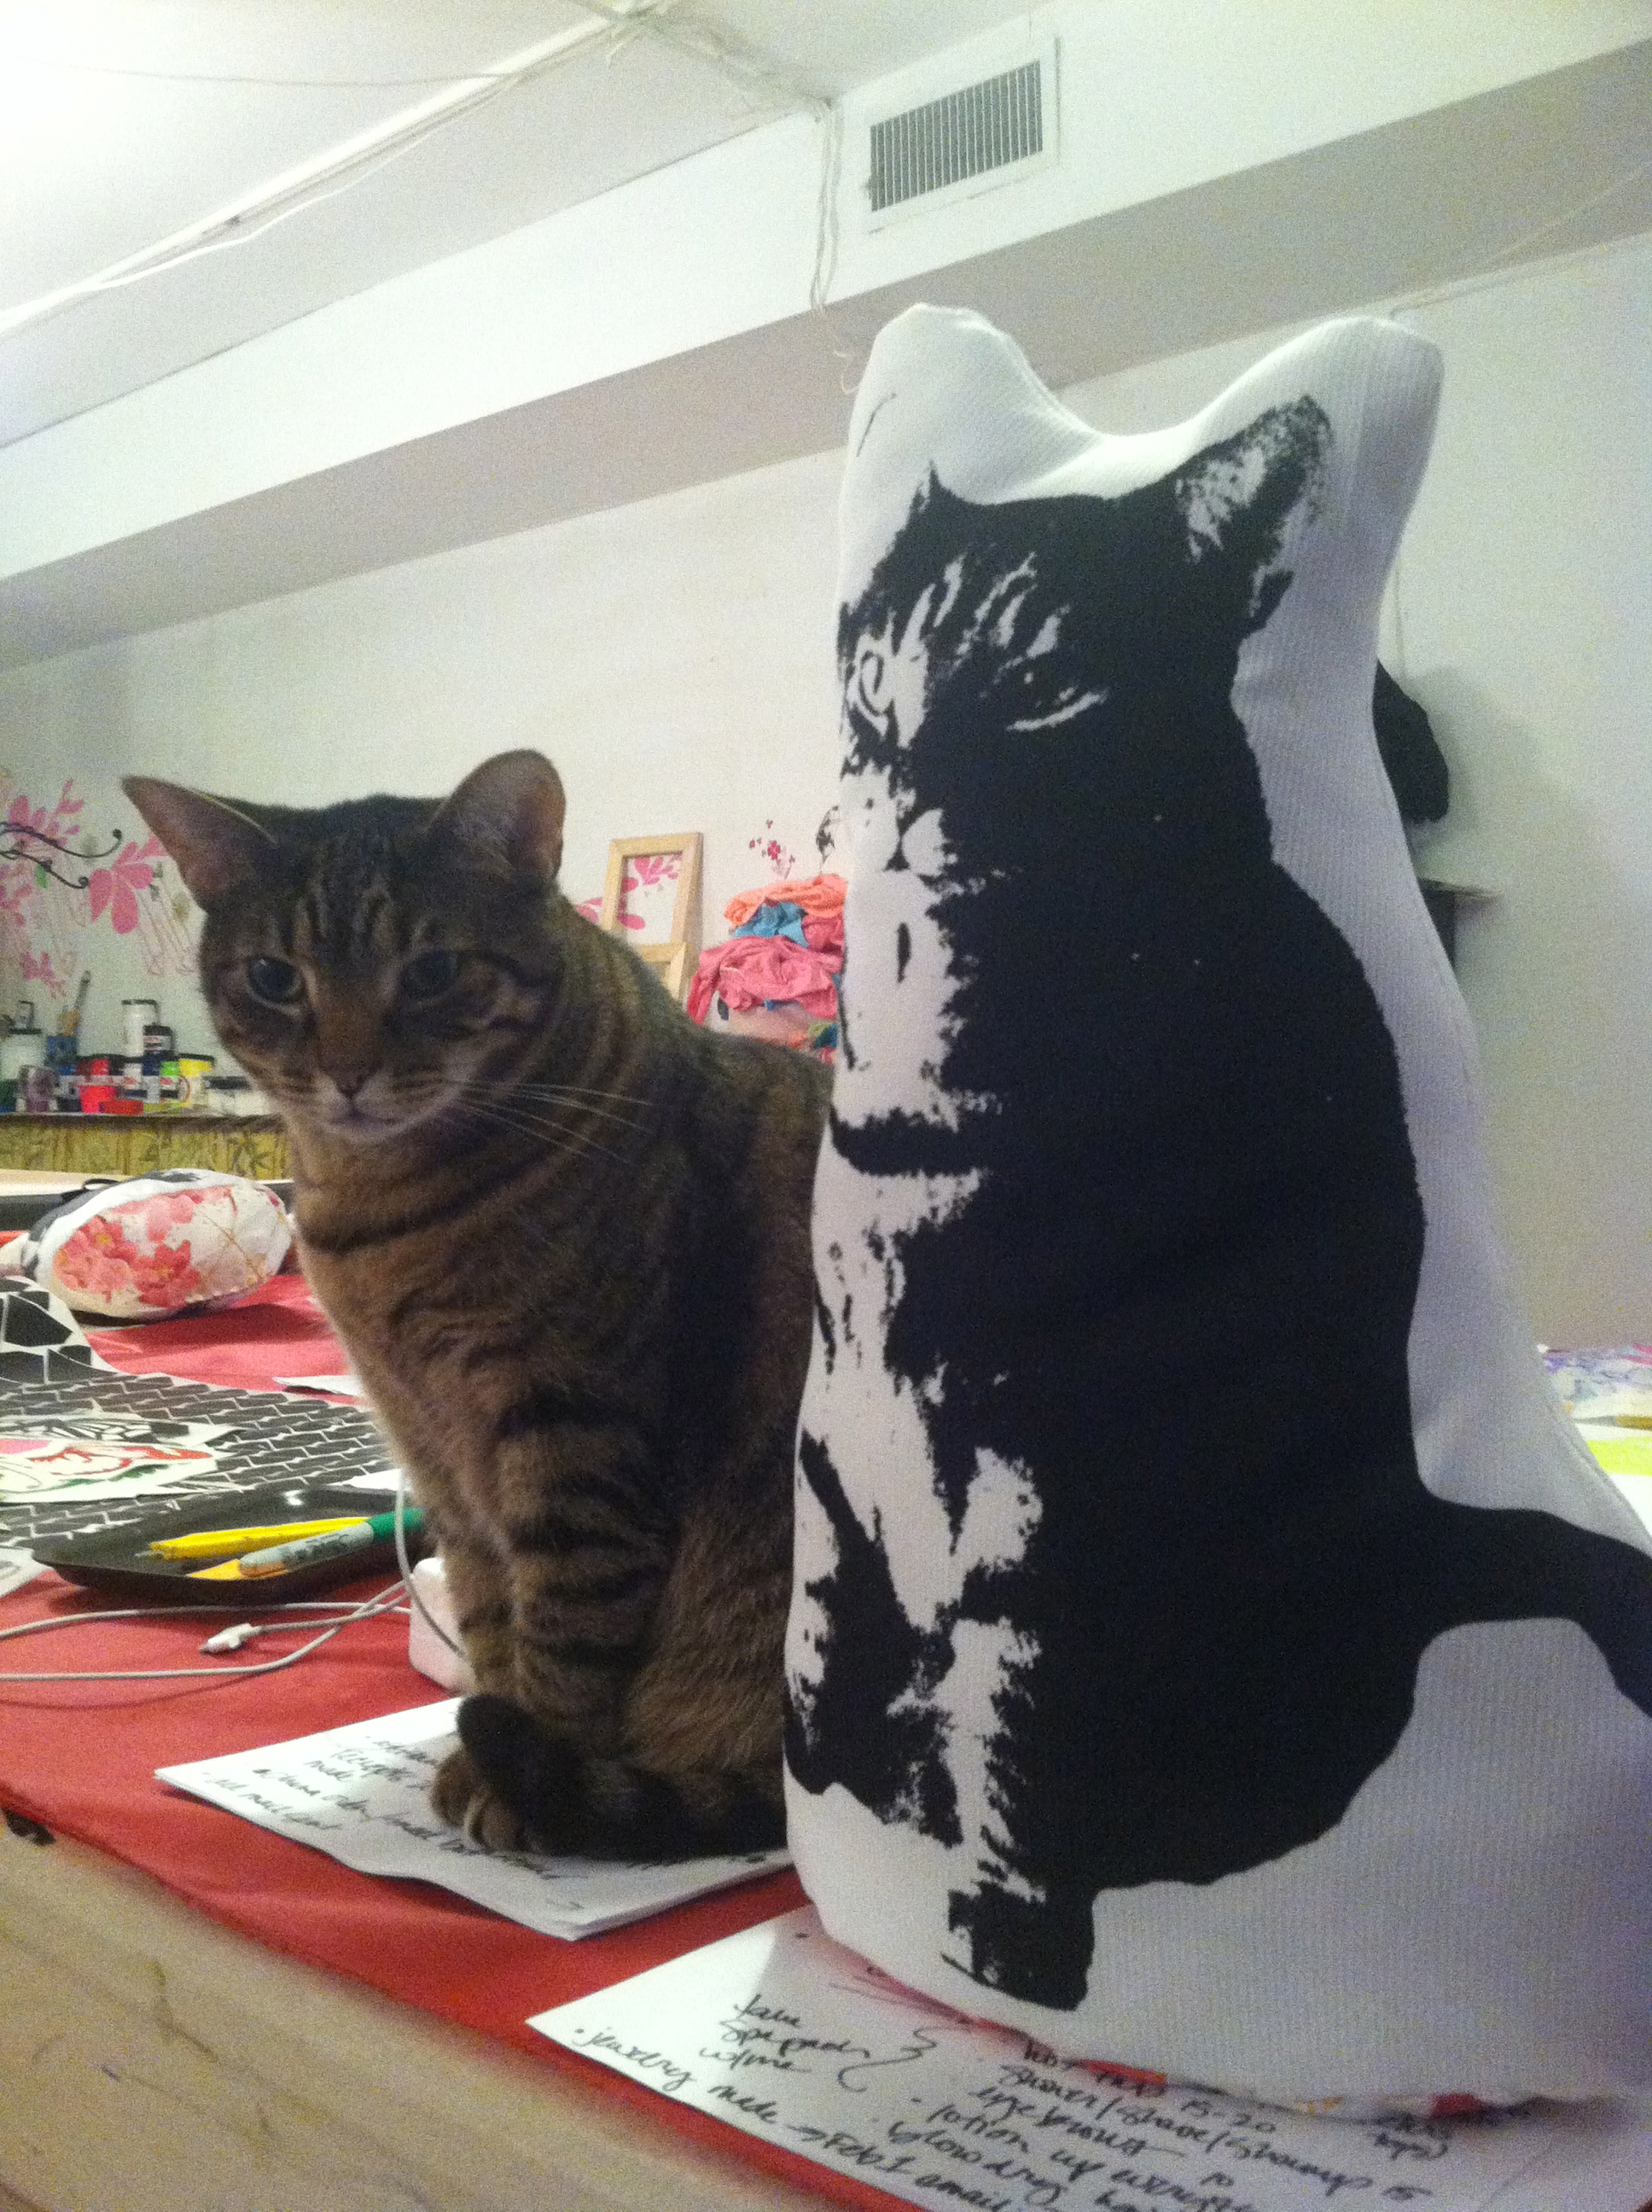 KATZ! and her pillow likeness- so cute!